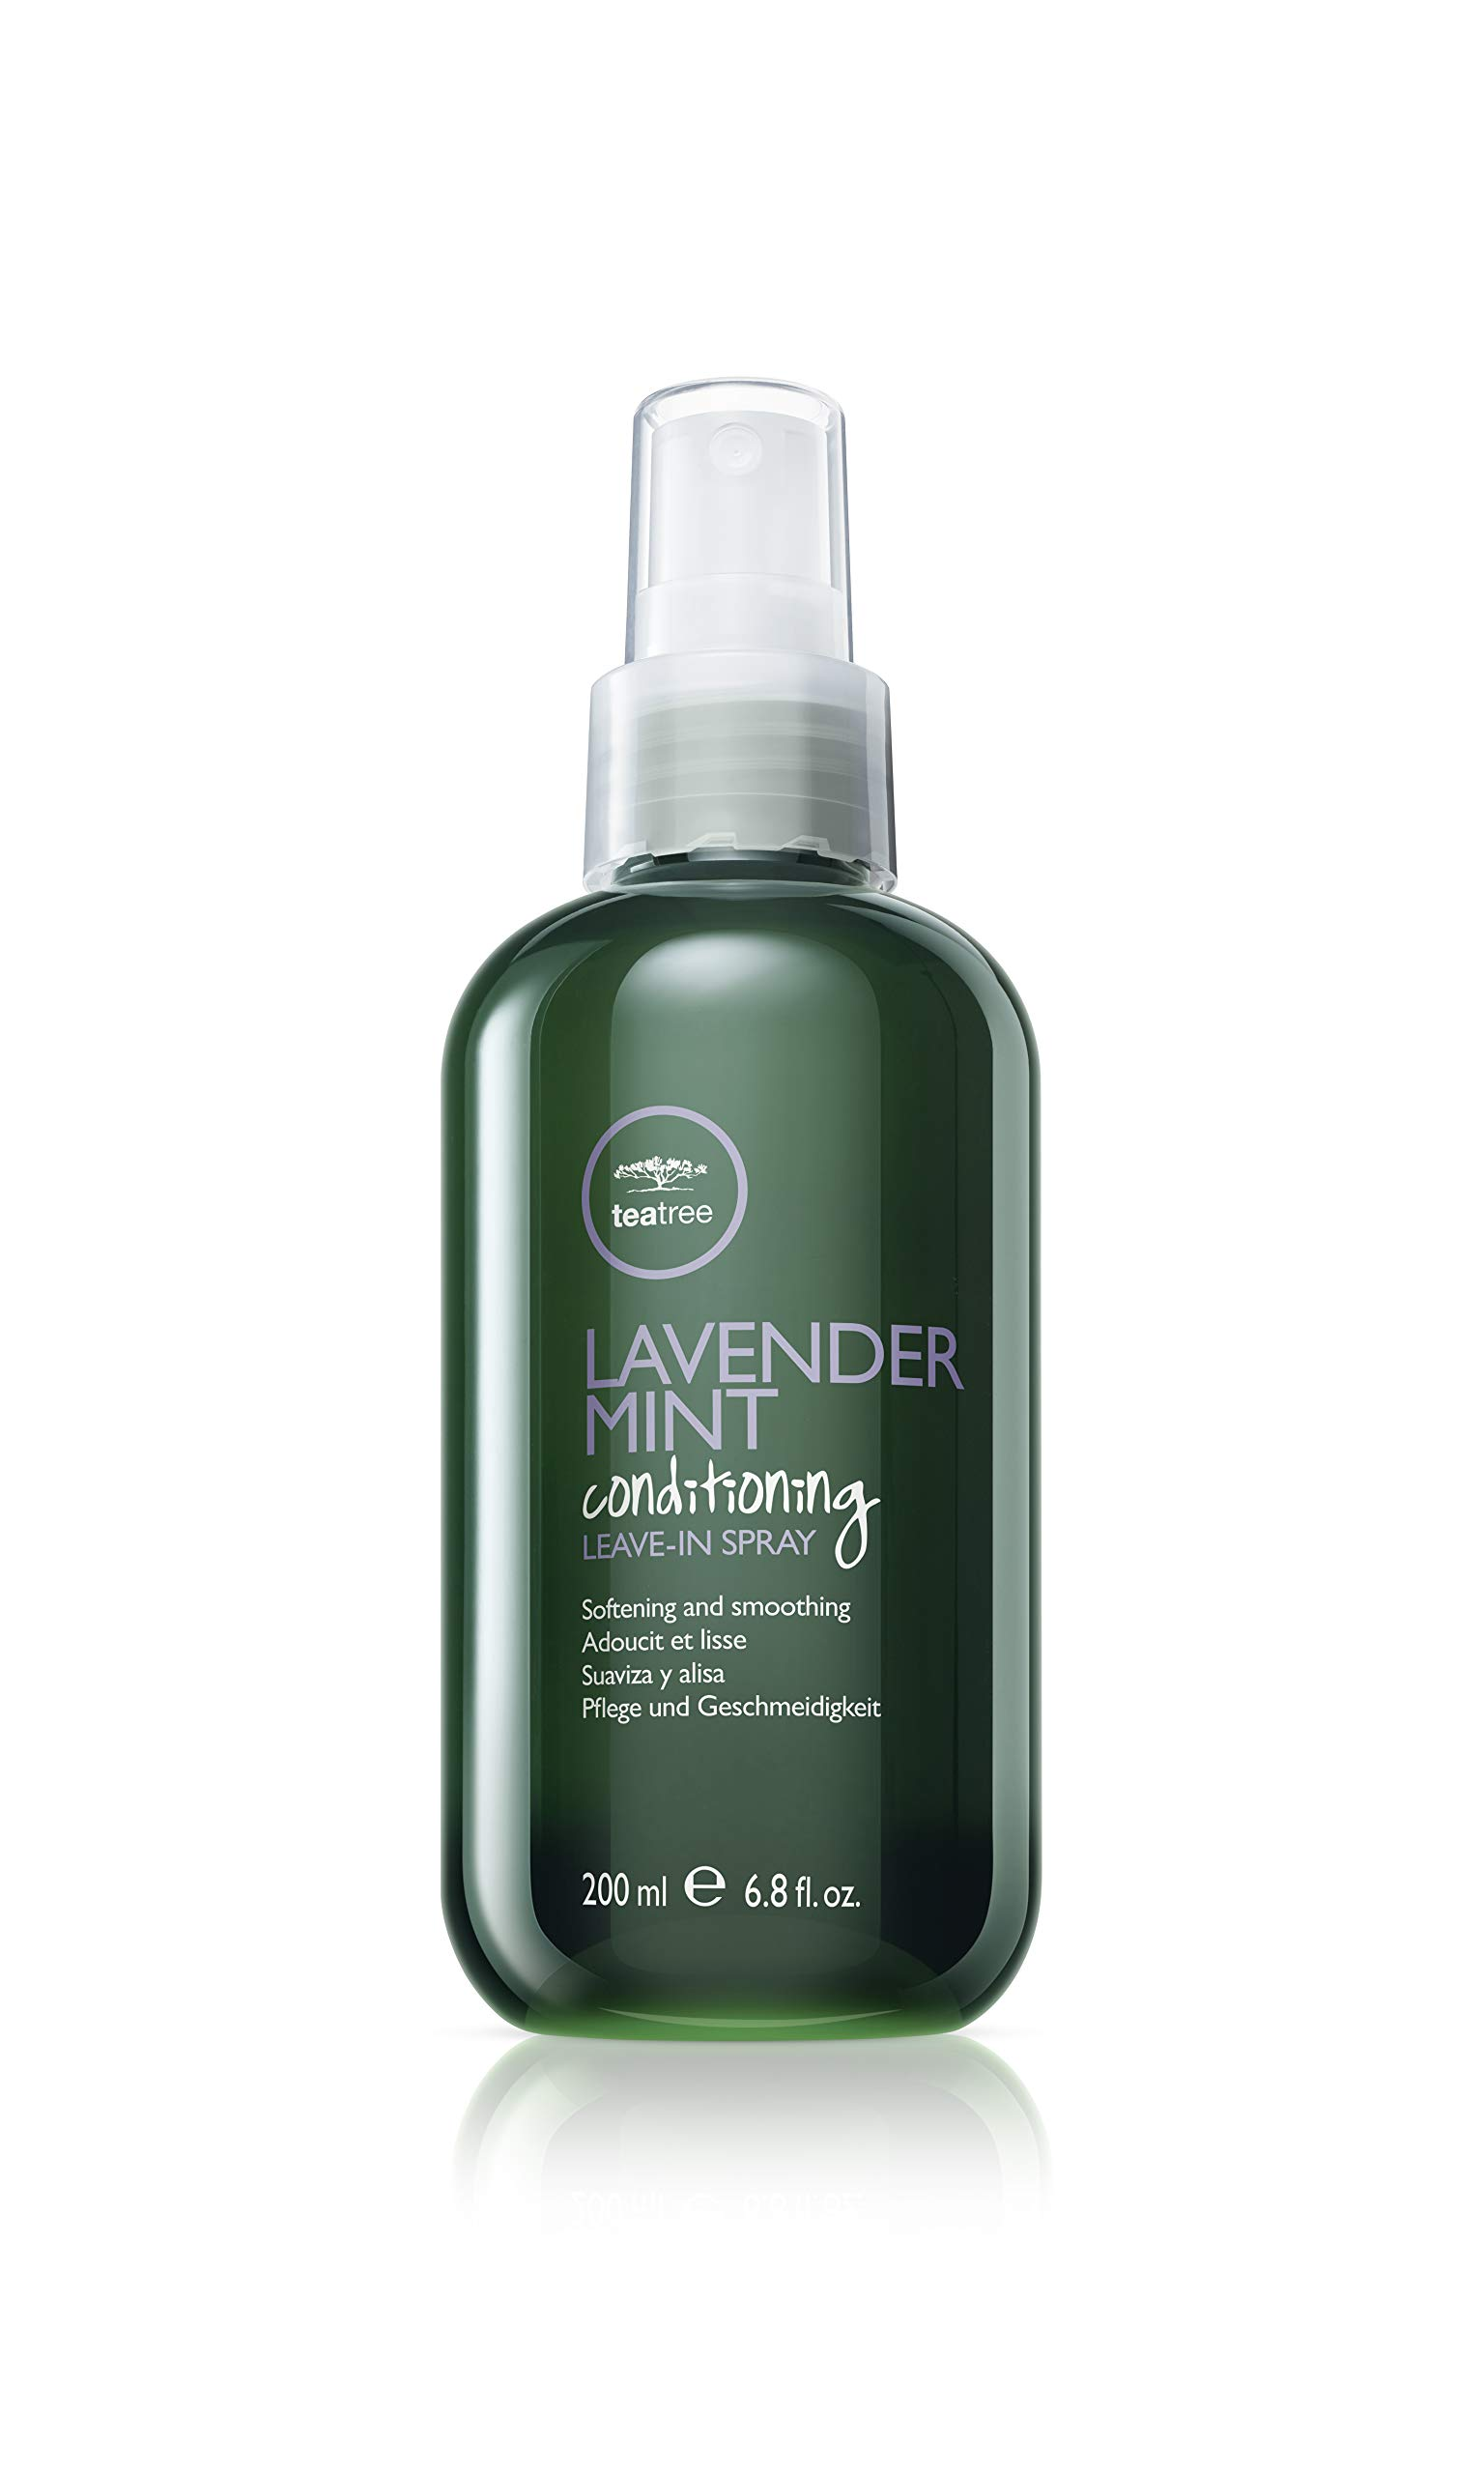 Tea Tree Lavender Mint Conditioning Leave-in Spray, 6.8 Fl Oz by Tea Tree